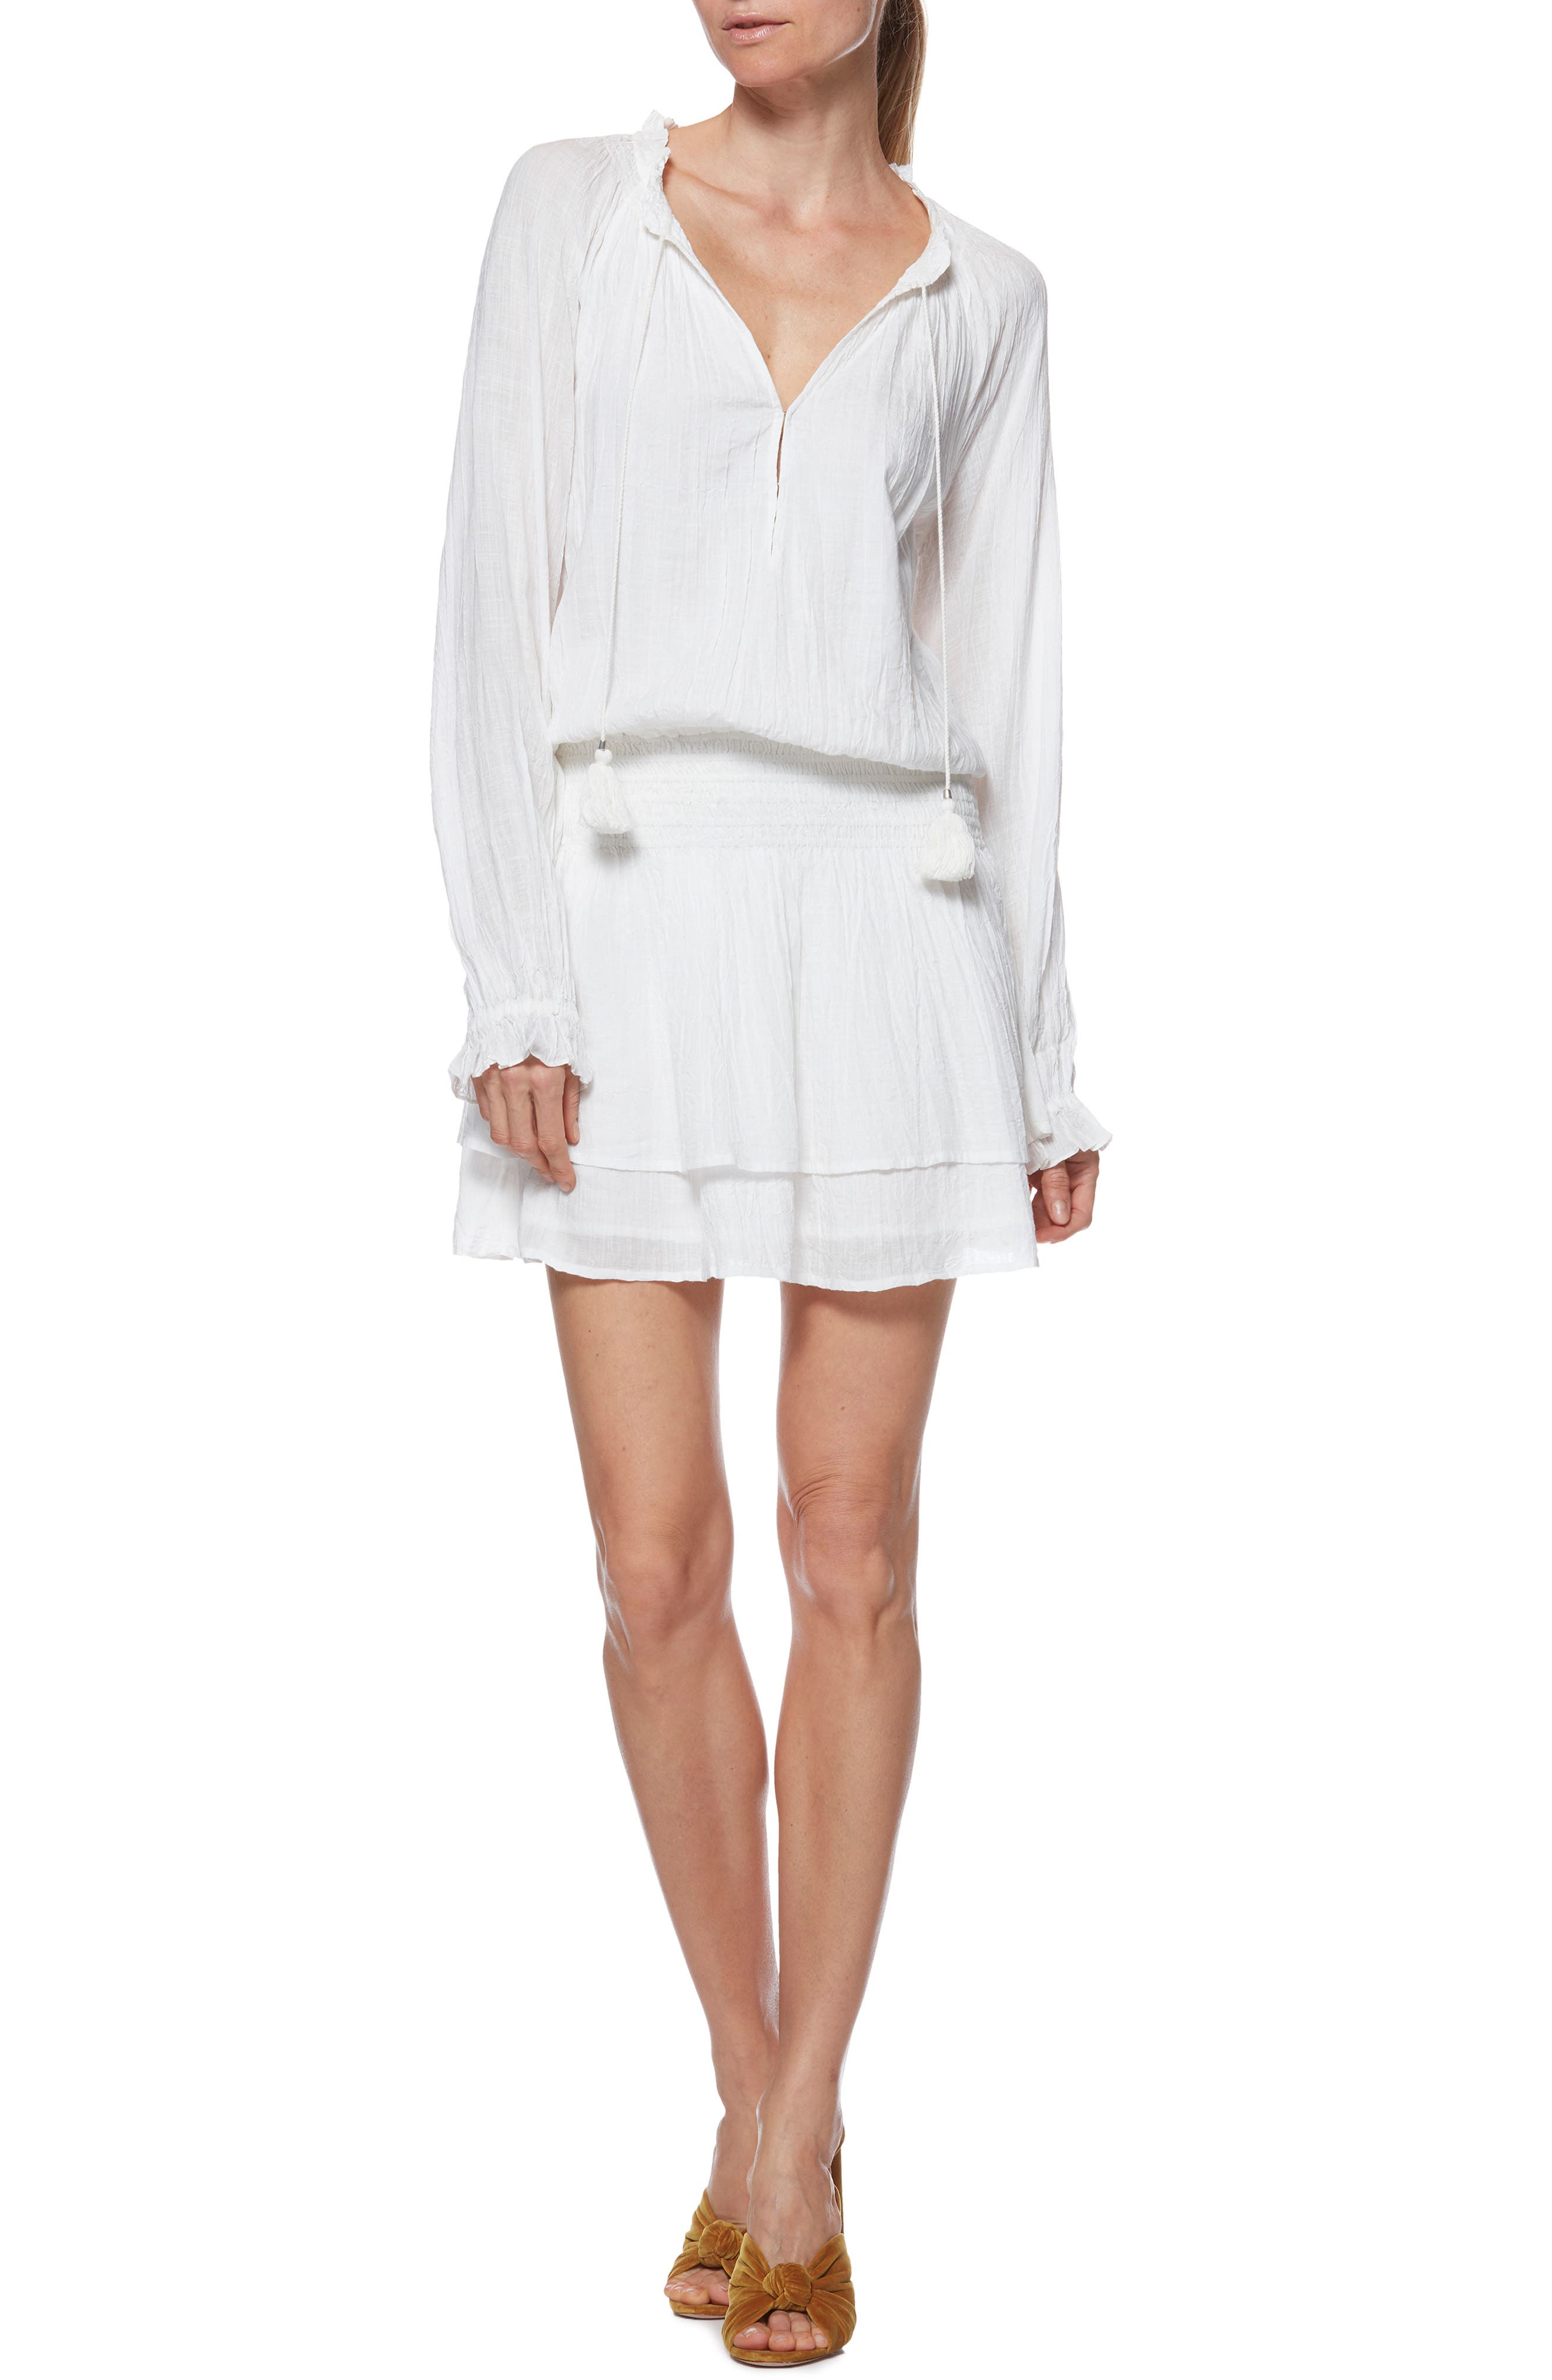 Lemay Dress,                         Main,                         color, WHITE